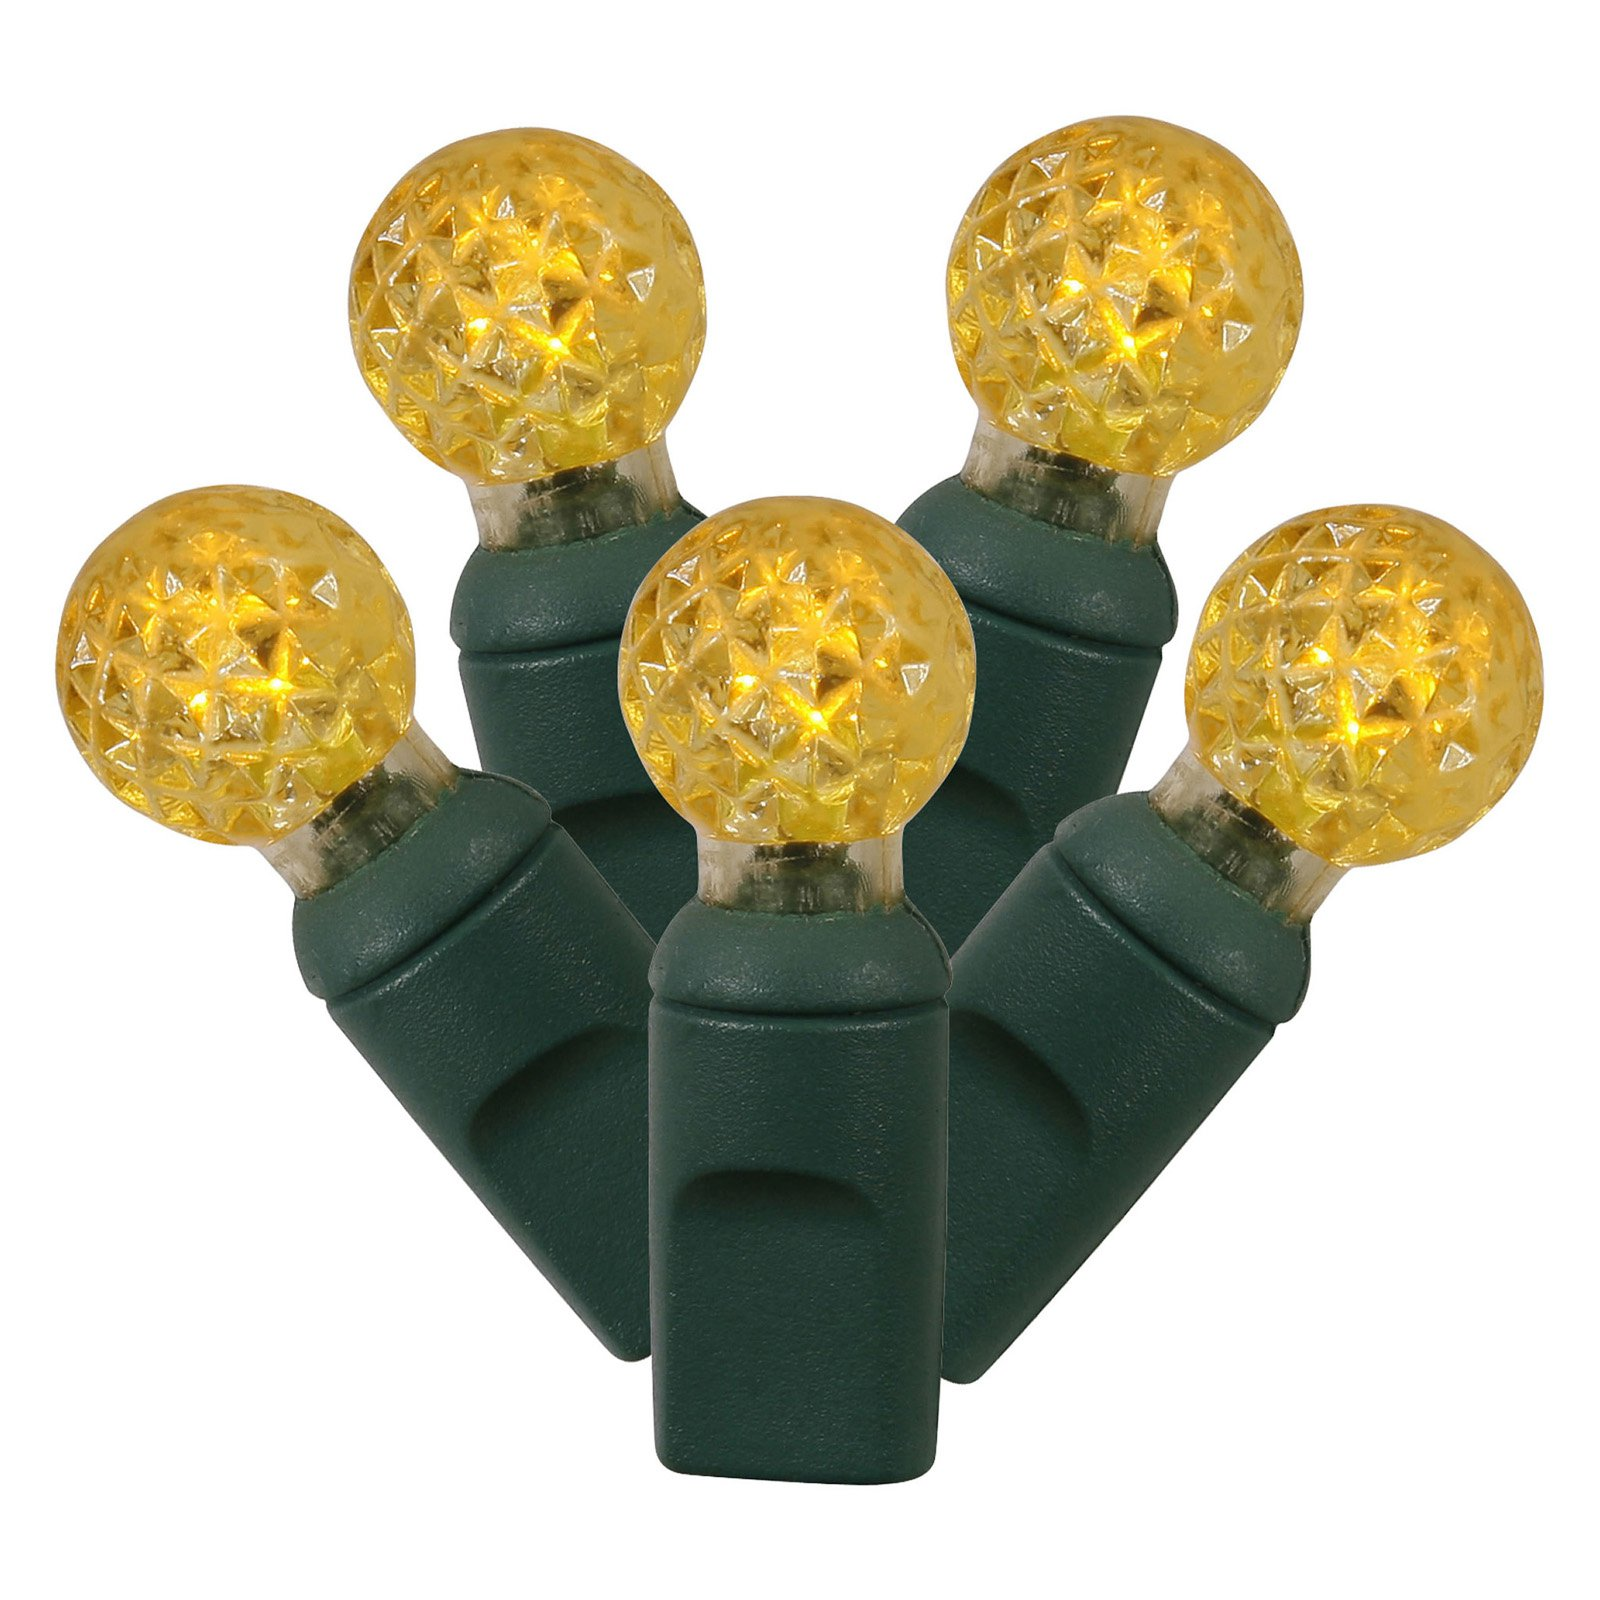 Vickerman 50 ct. Yellow G12 LED Lights with Green Wire - Set of 2